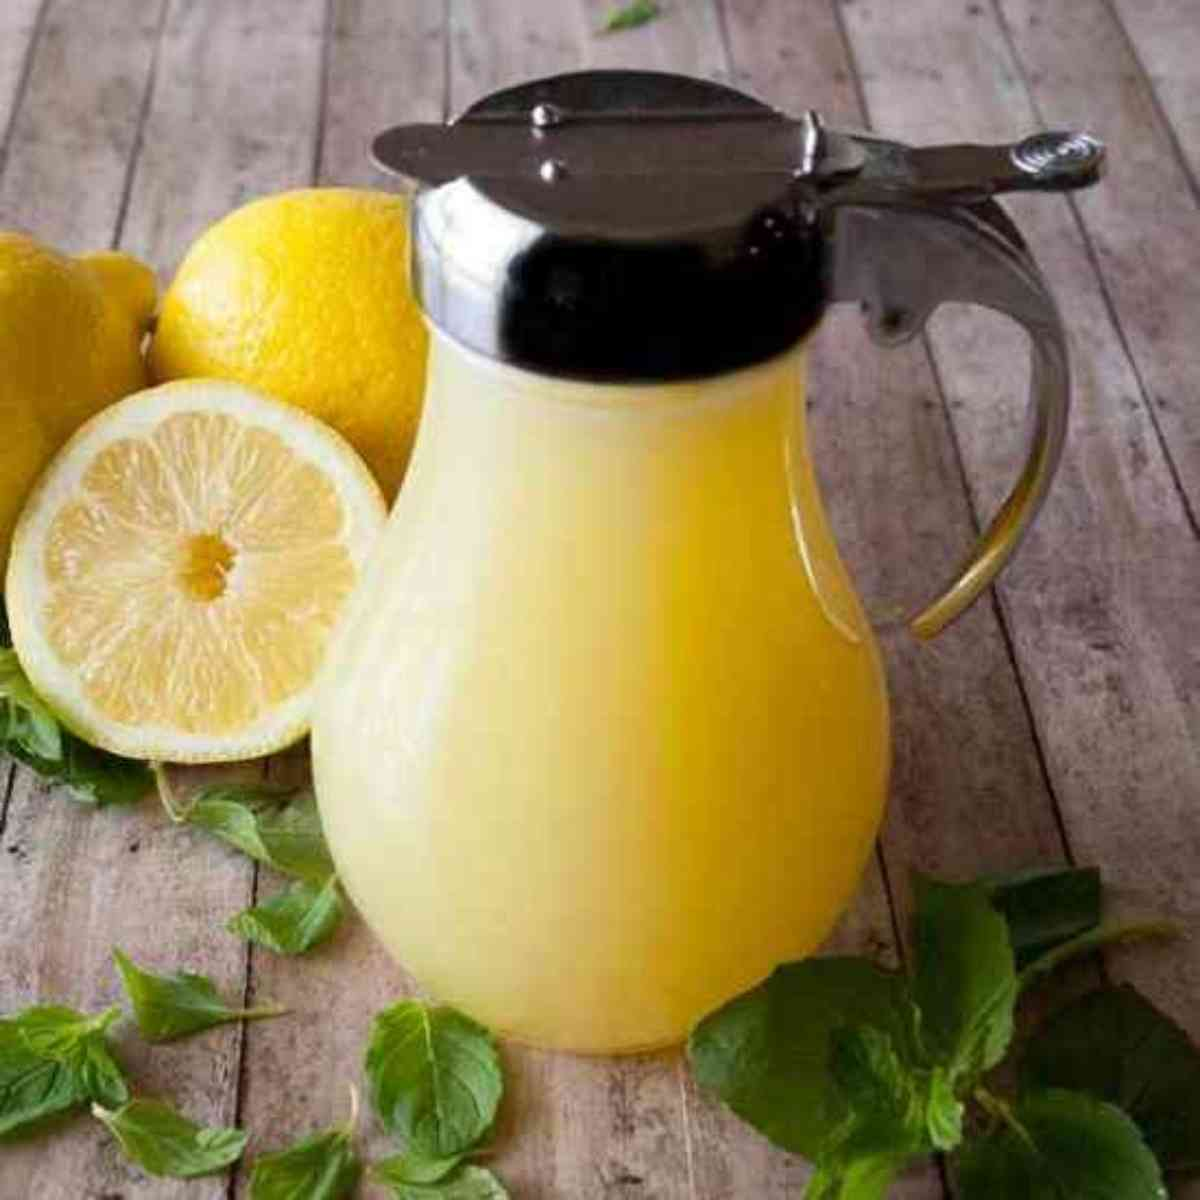 Lemon Cream Syrup next to fresh lemons and mint.